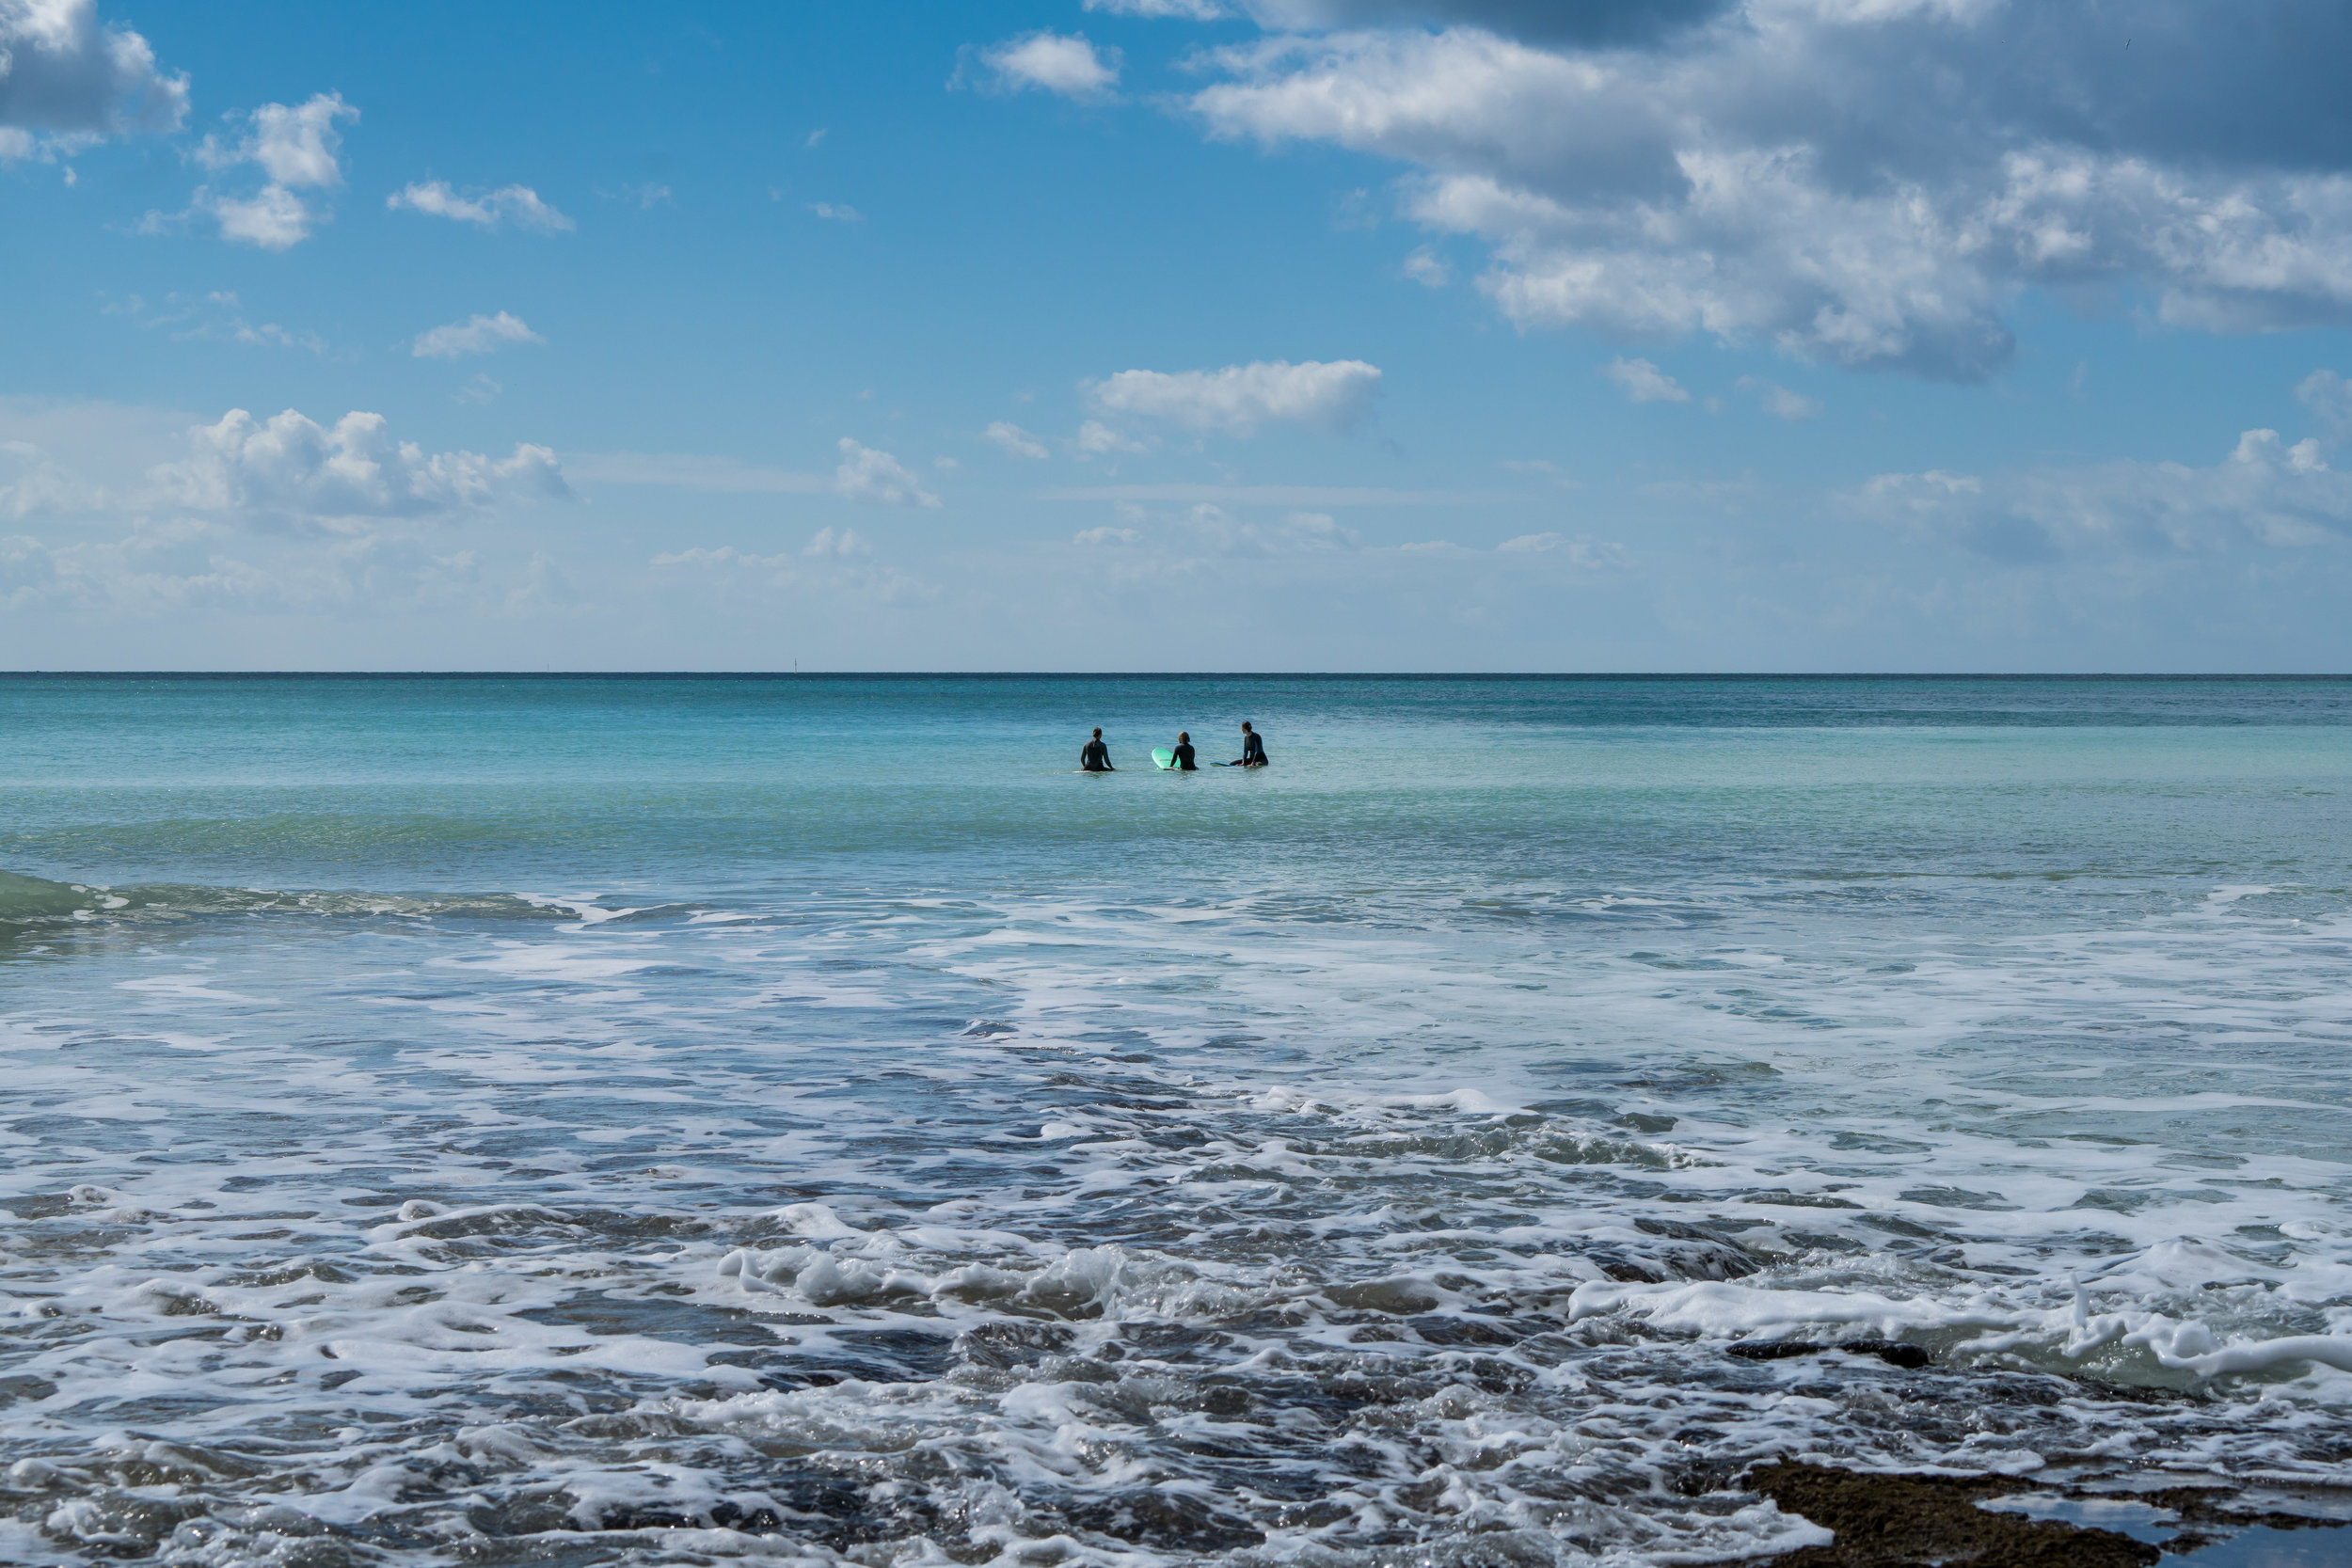 Our guests enjoying the beautiful ocean…